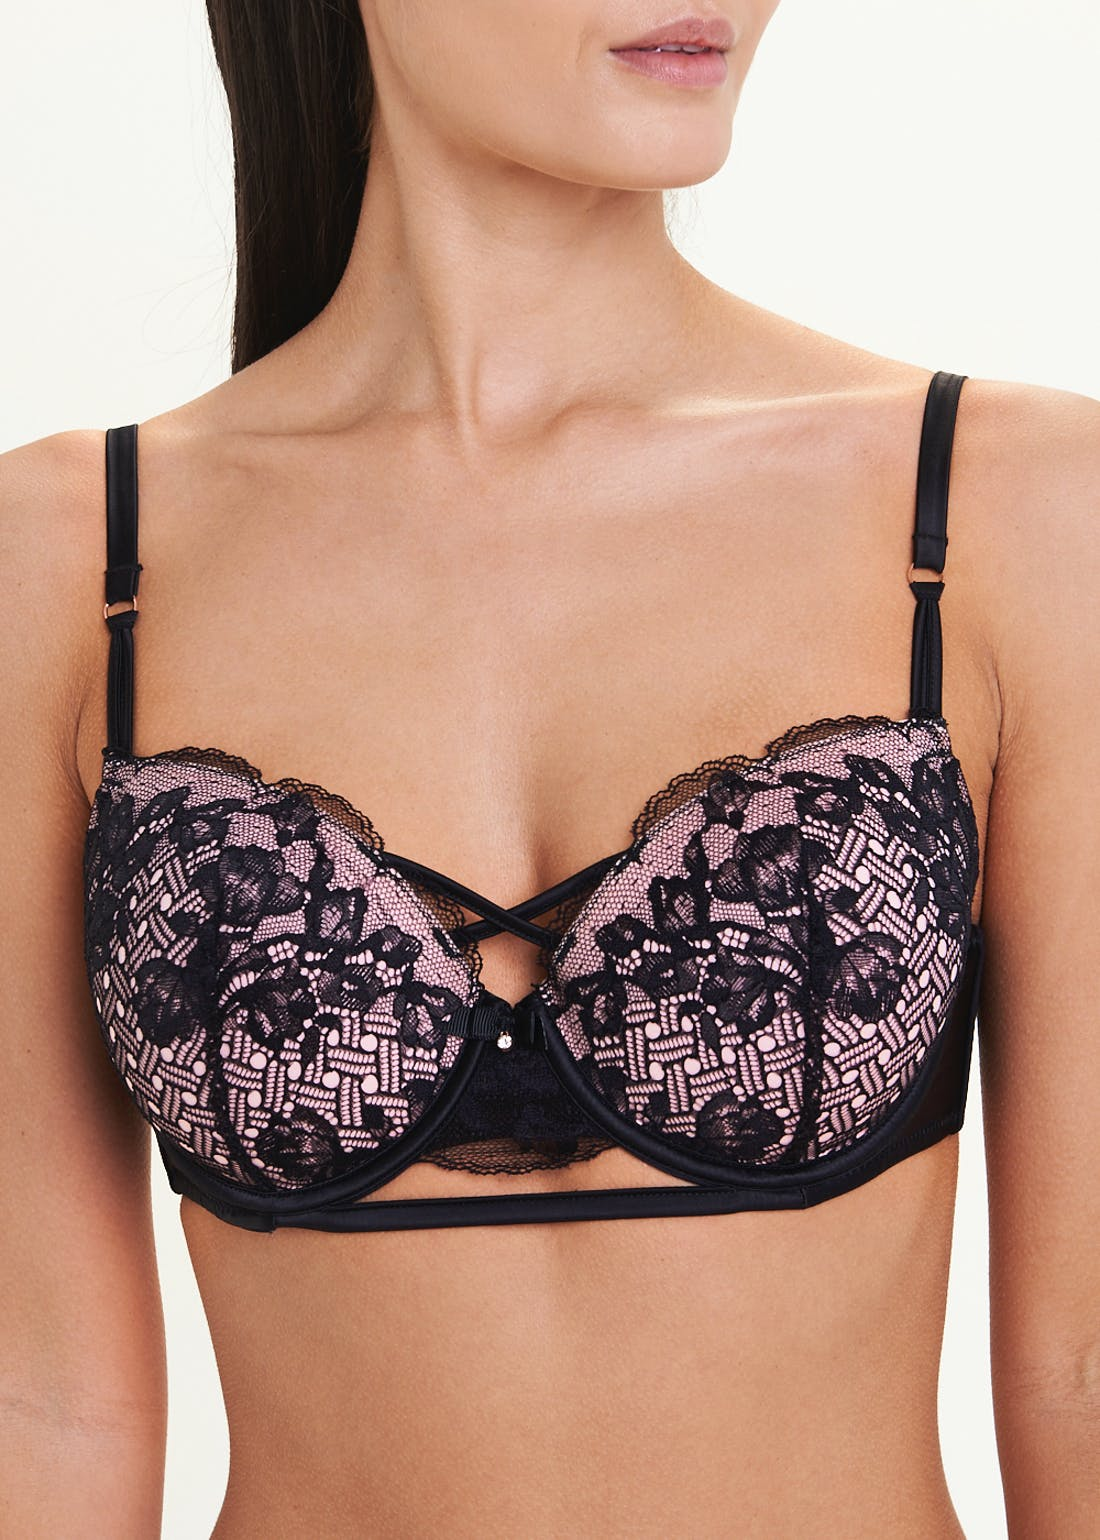 Criss Cross Lace Bra